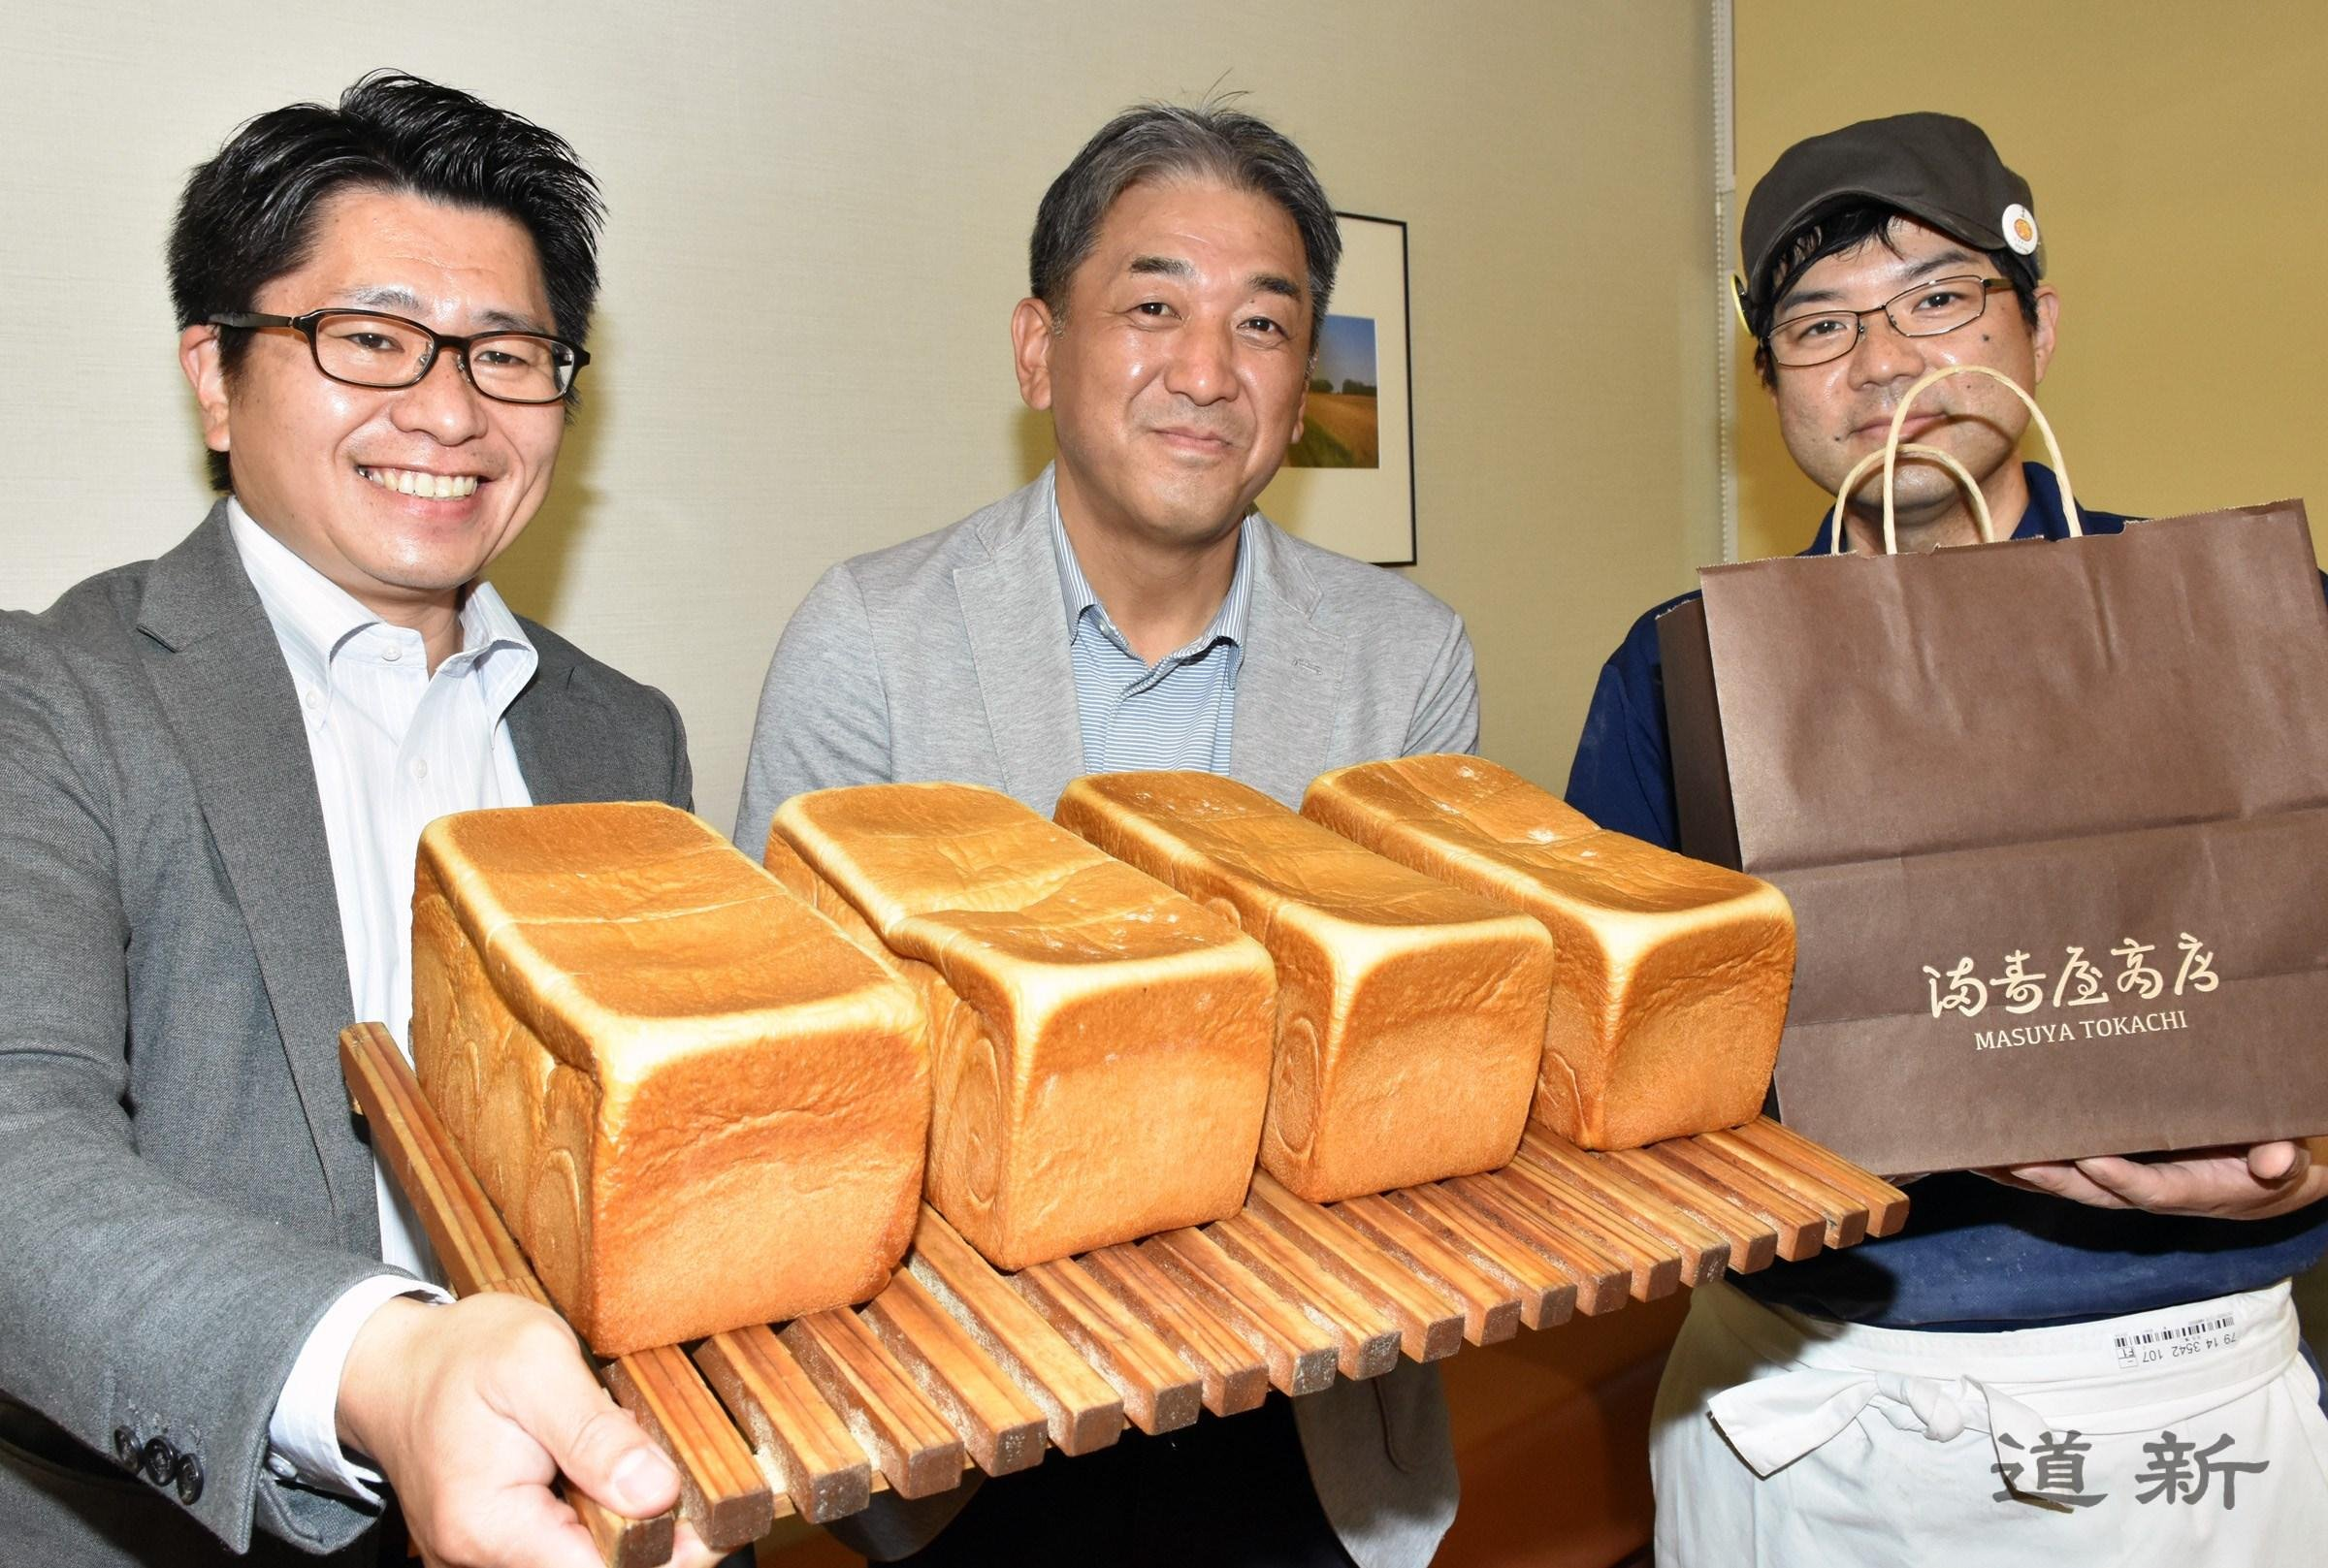 Photo:Masuya bakery in Obihiro launches its first high quality bread made with Tokachi ingredients